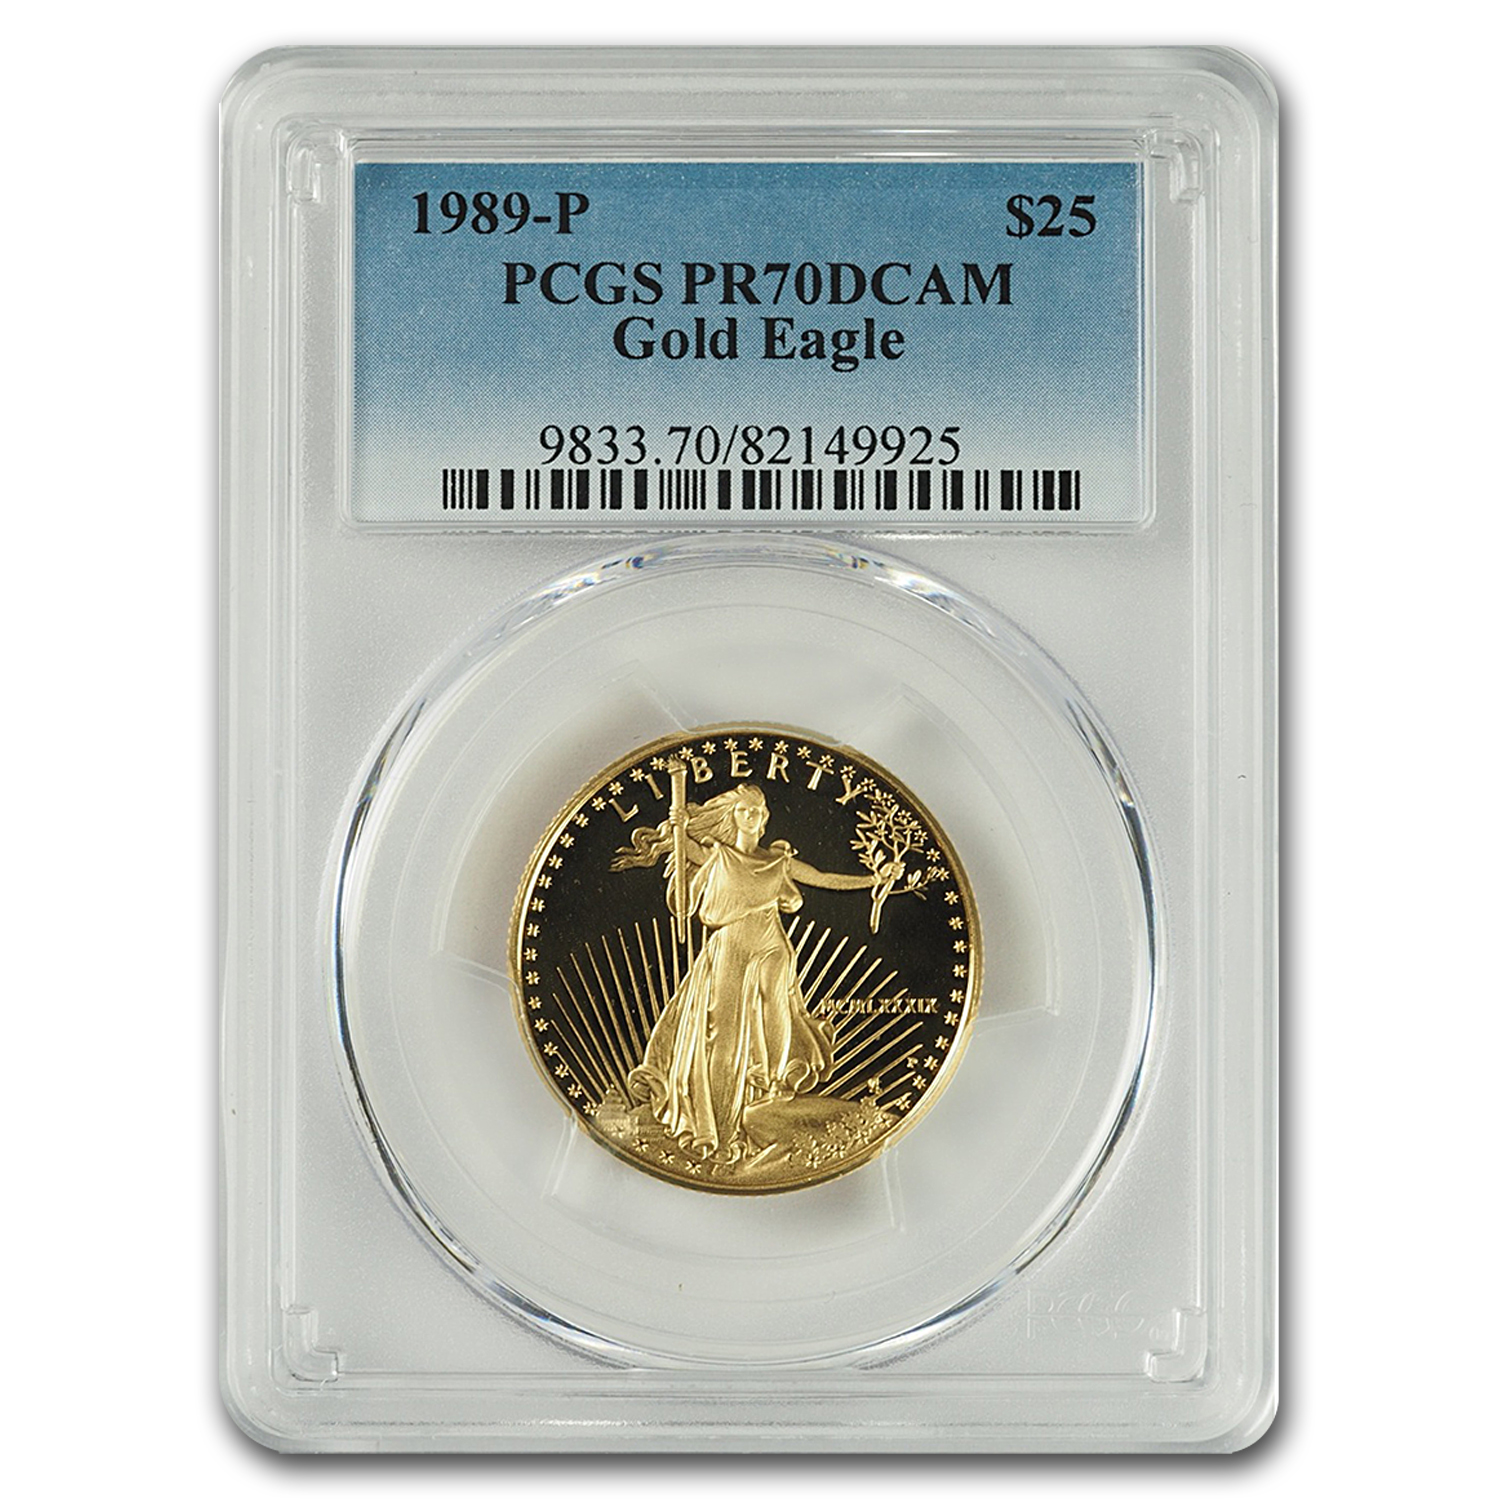 1989-P 1/2 oz Proof Gold American Eagle PR-70 PCGS